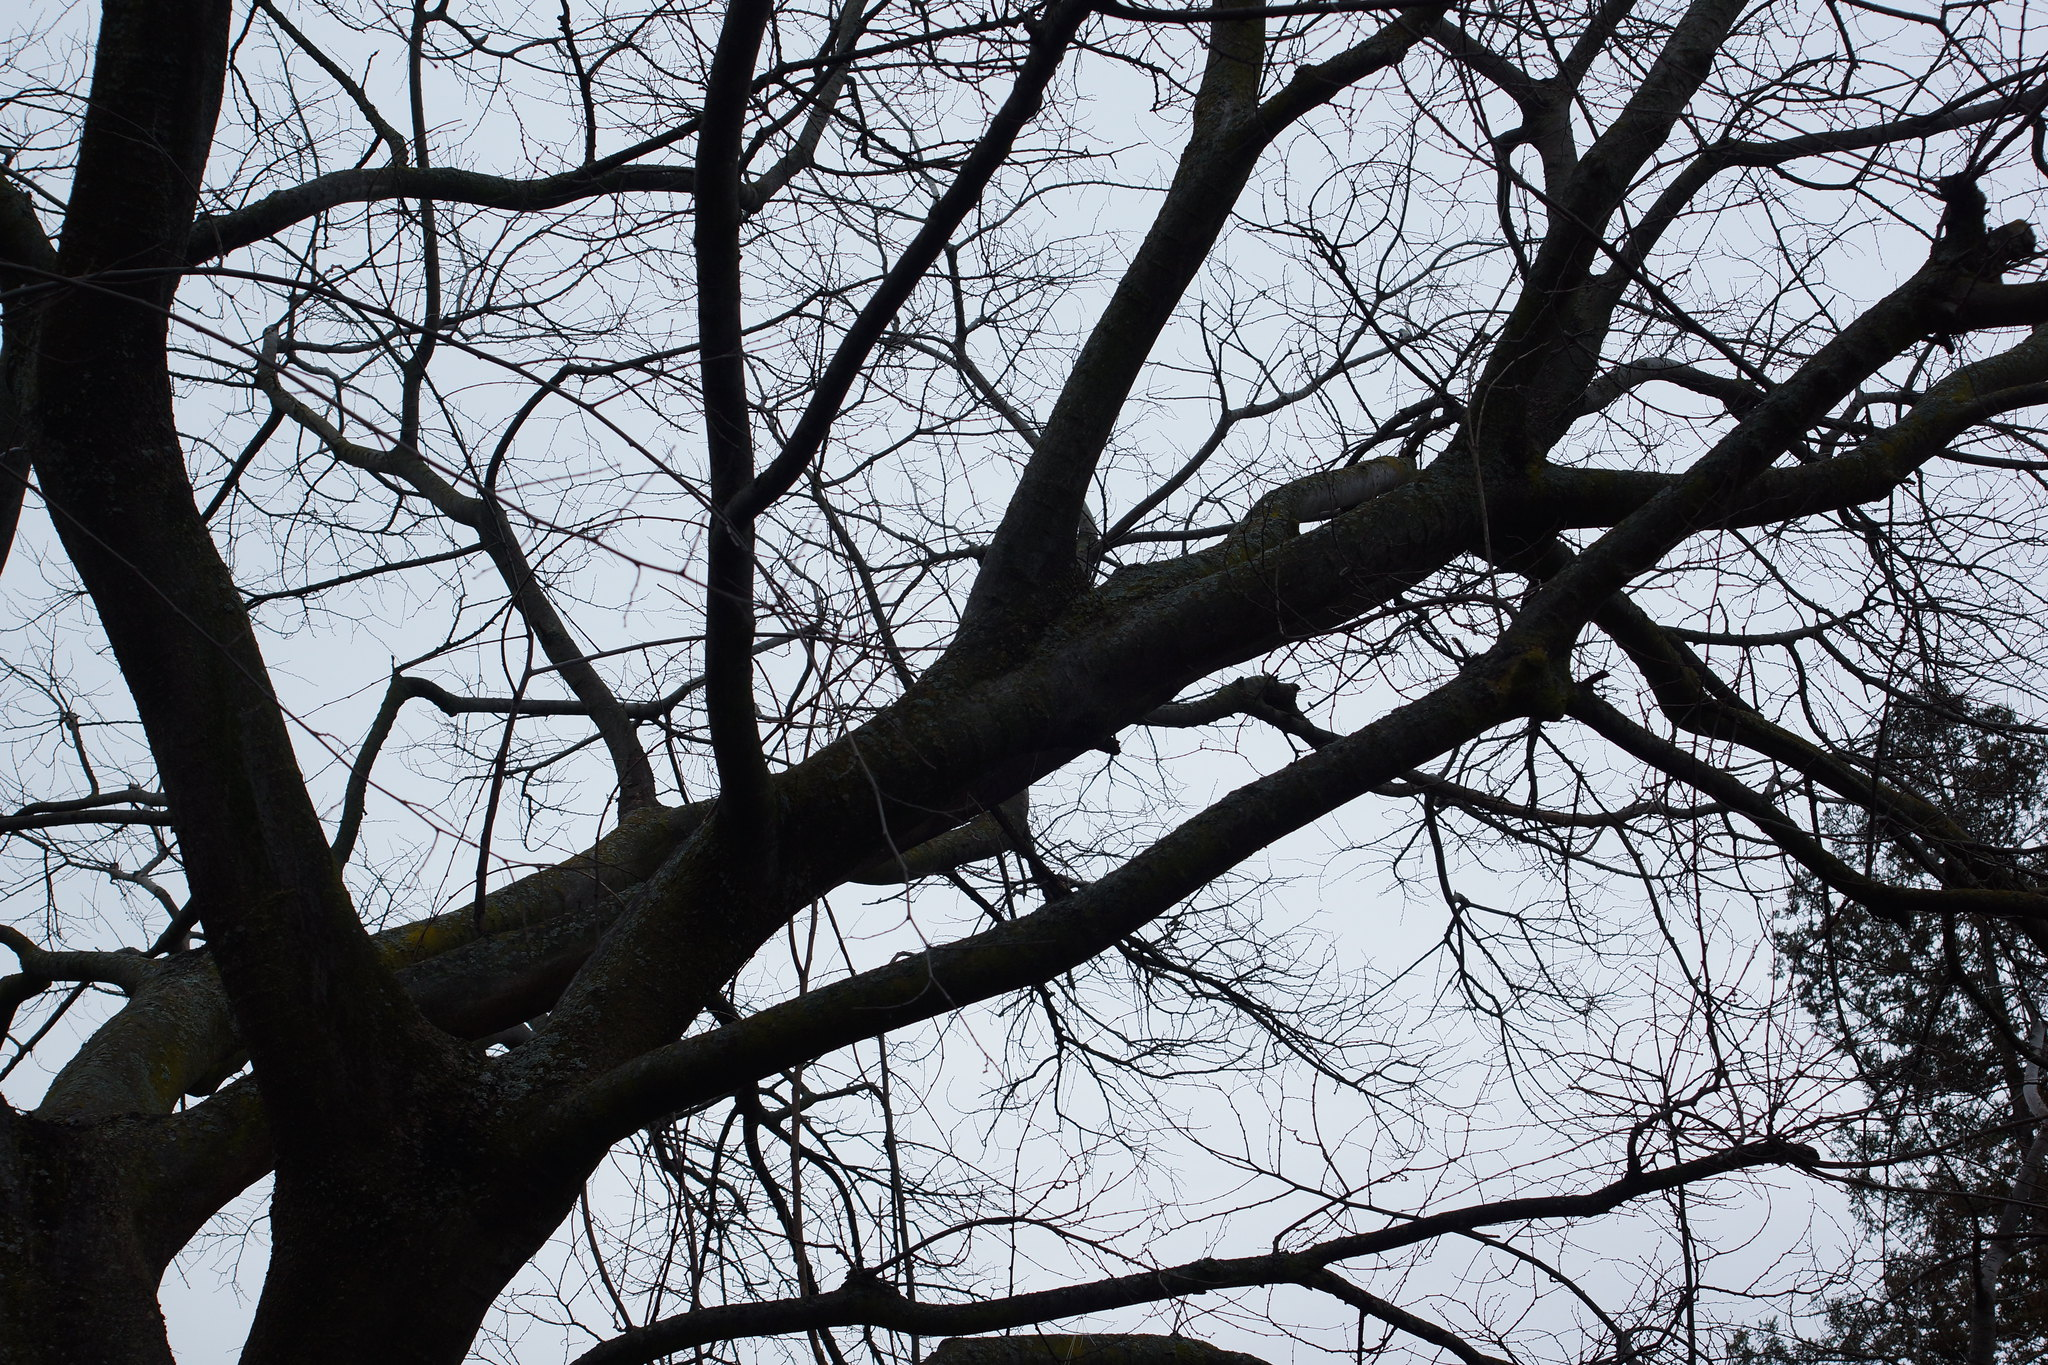 2017-02-15 Twigs Test - Take 4 [#1]